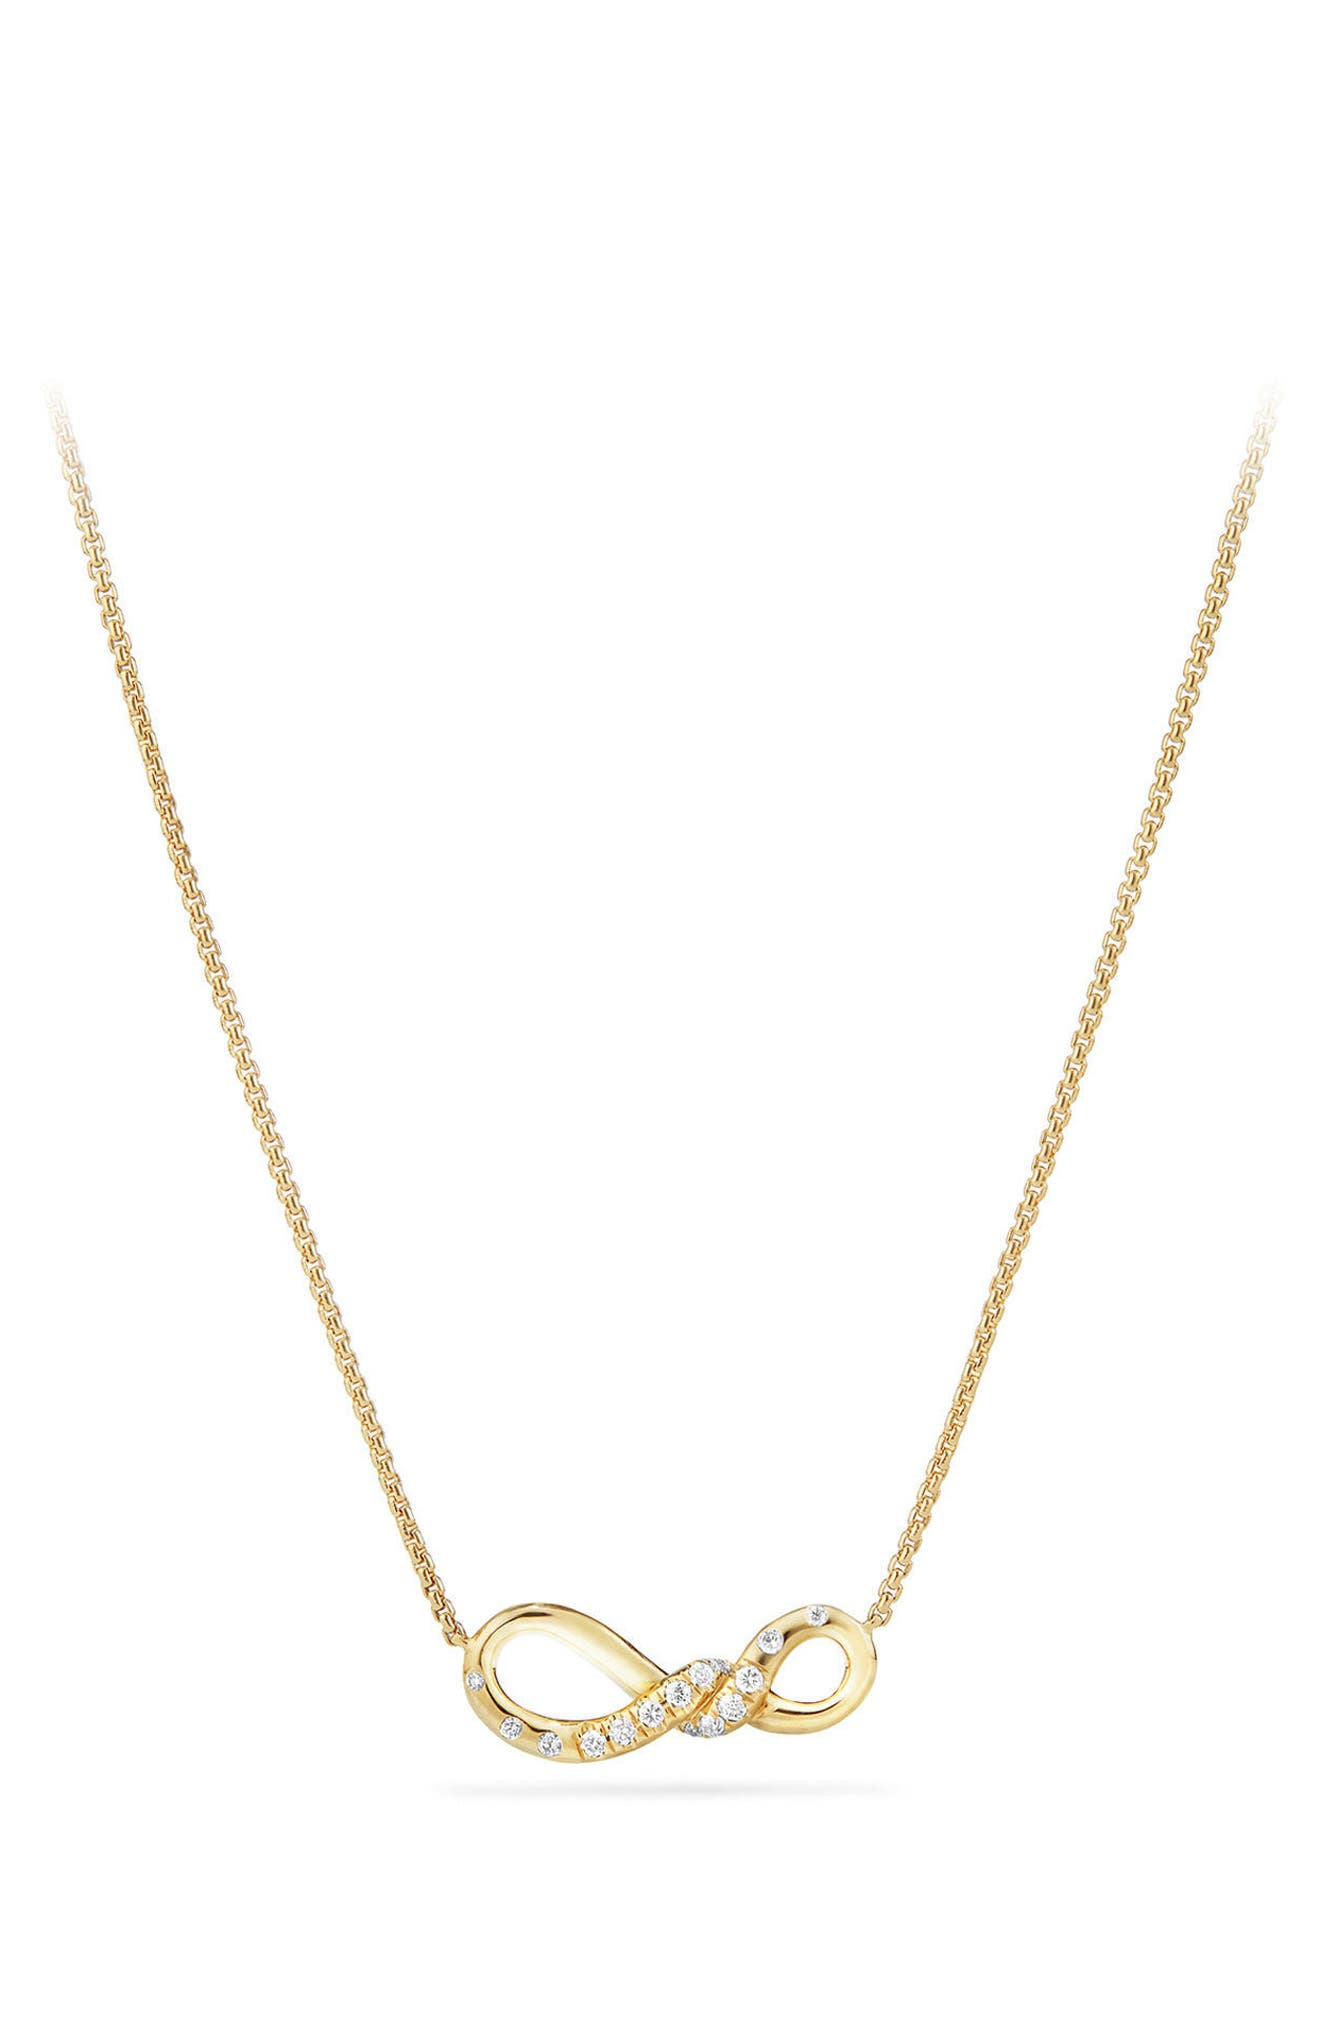 Continuance Pendant Necklace in 18K Gold with Diamonds,                         Main,                         color, YELLOW GOLD